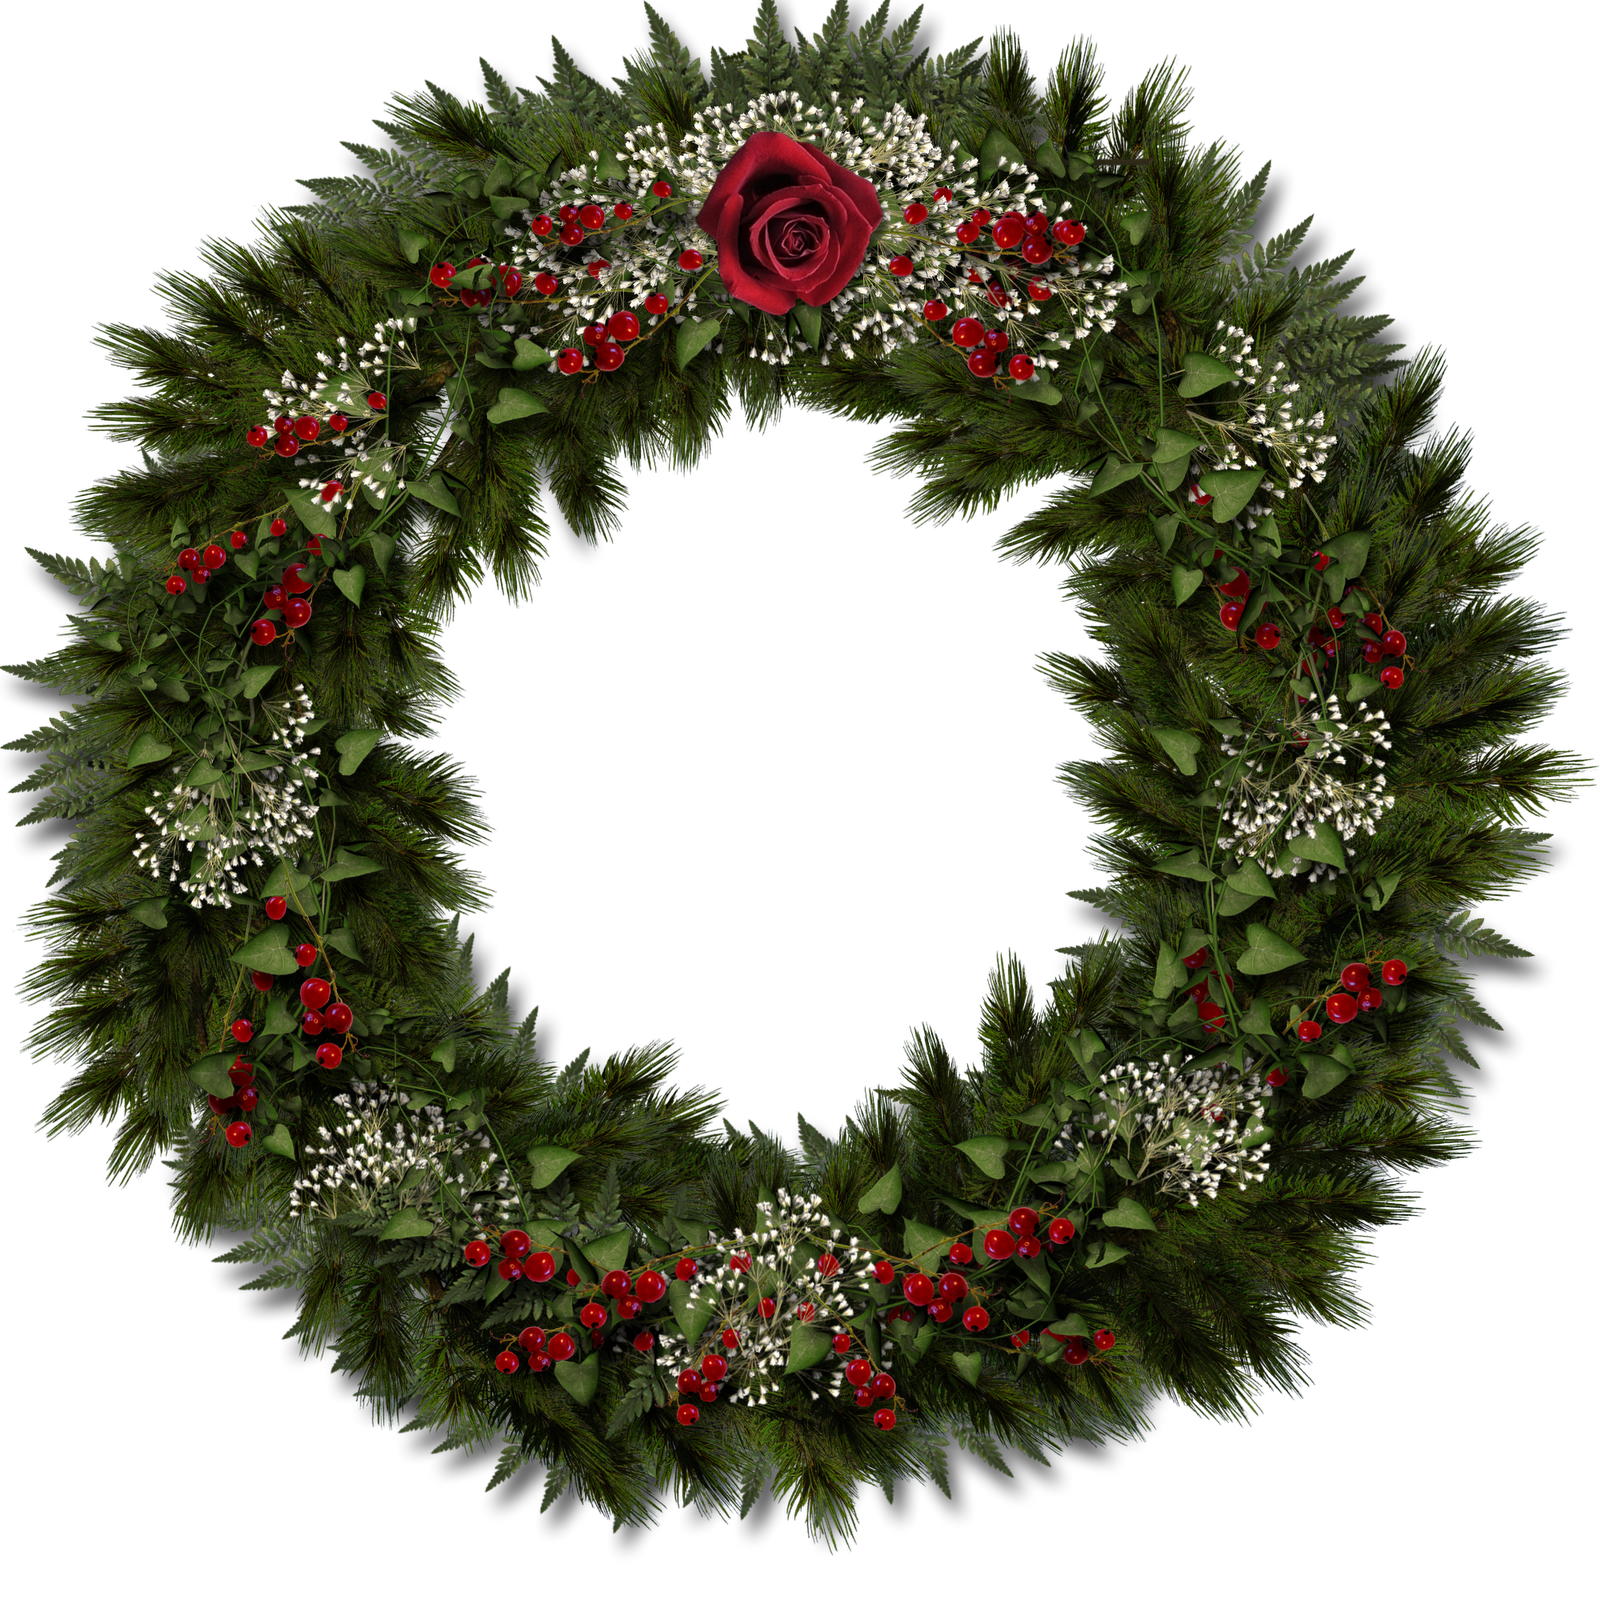 Snowflake wreath free clipart picture library Free Christmas Scrapbooking Goodies picture library